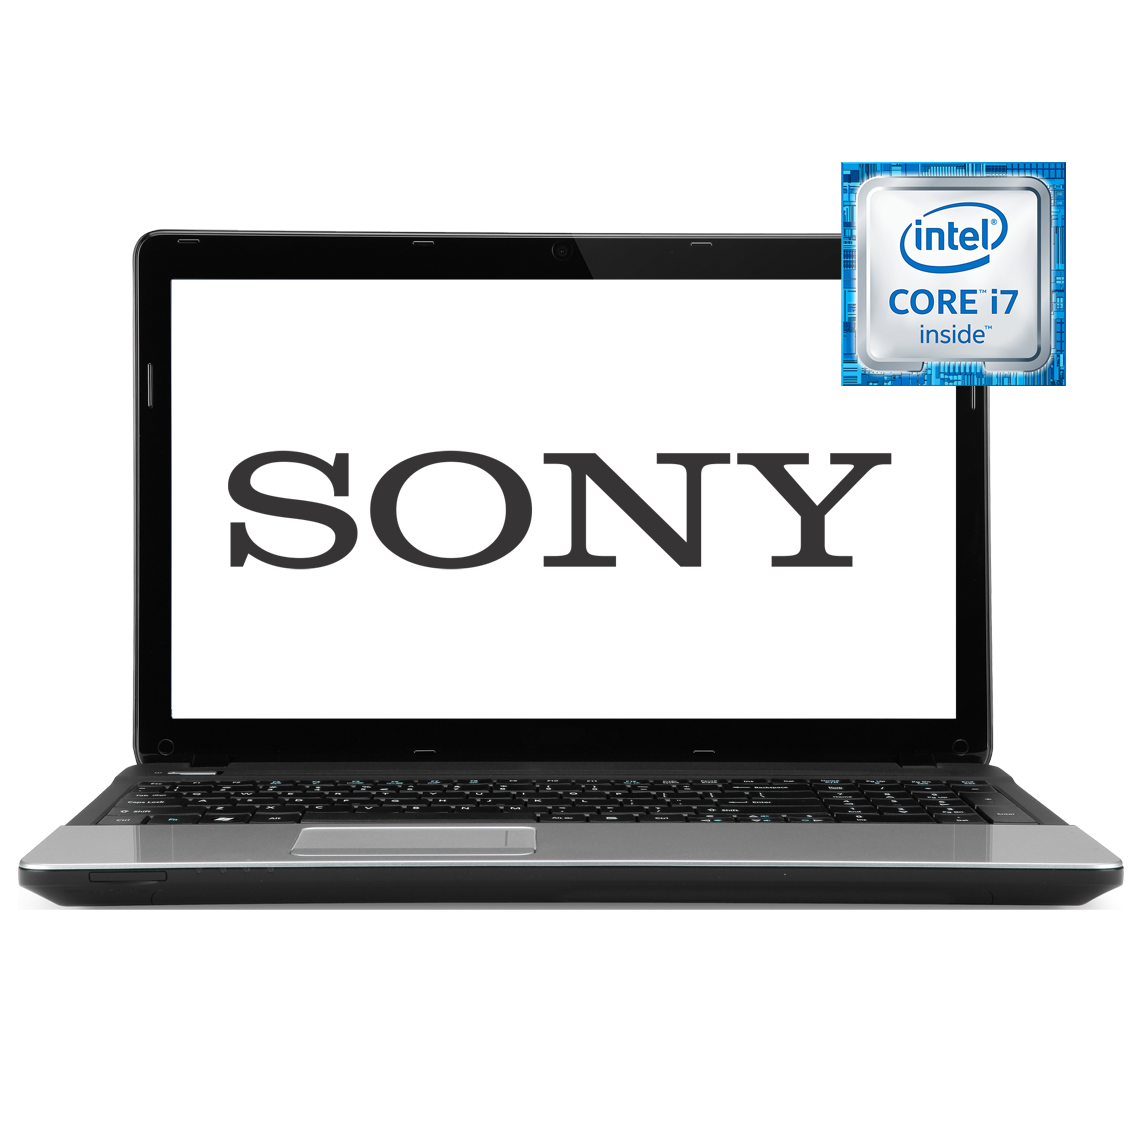 Sony - 17.3 inch Core i7 5th Gen